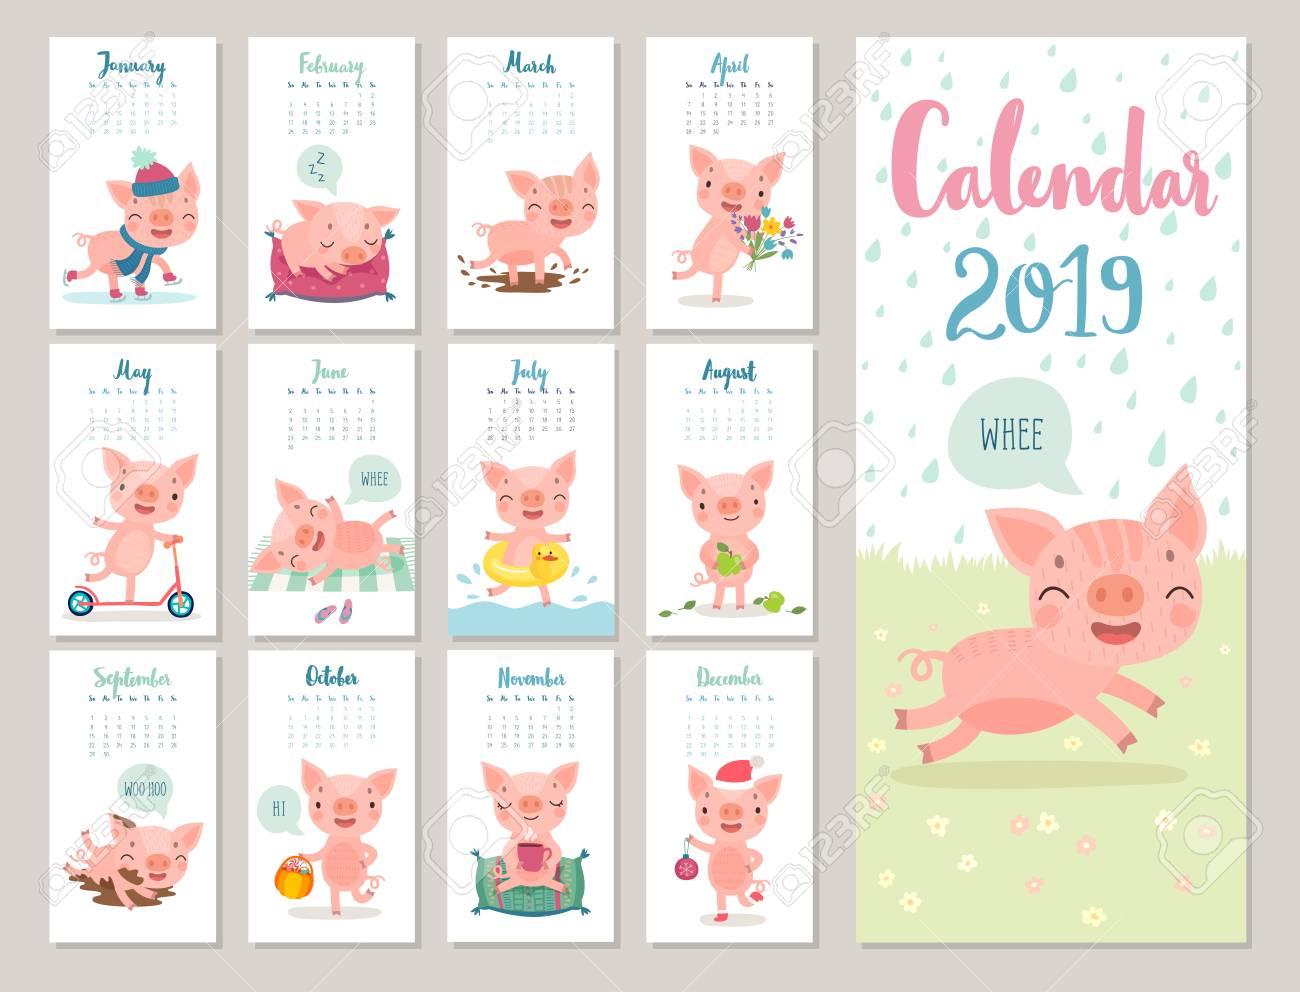 Calendar 2019. Cute monthly calendar with cheerful piggies. Hand drawn style characters. Travel theme. - 112264267